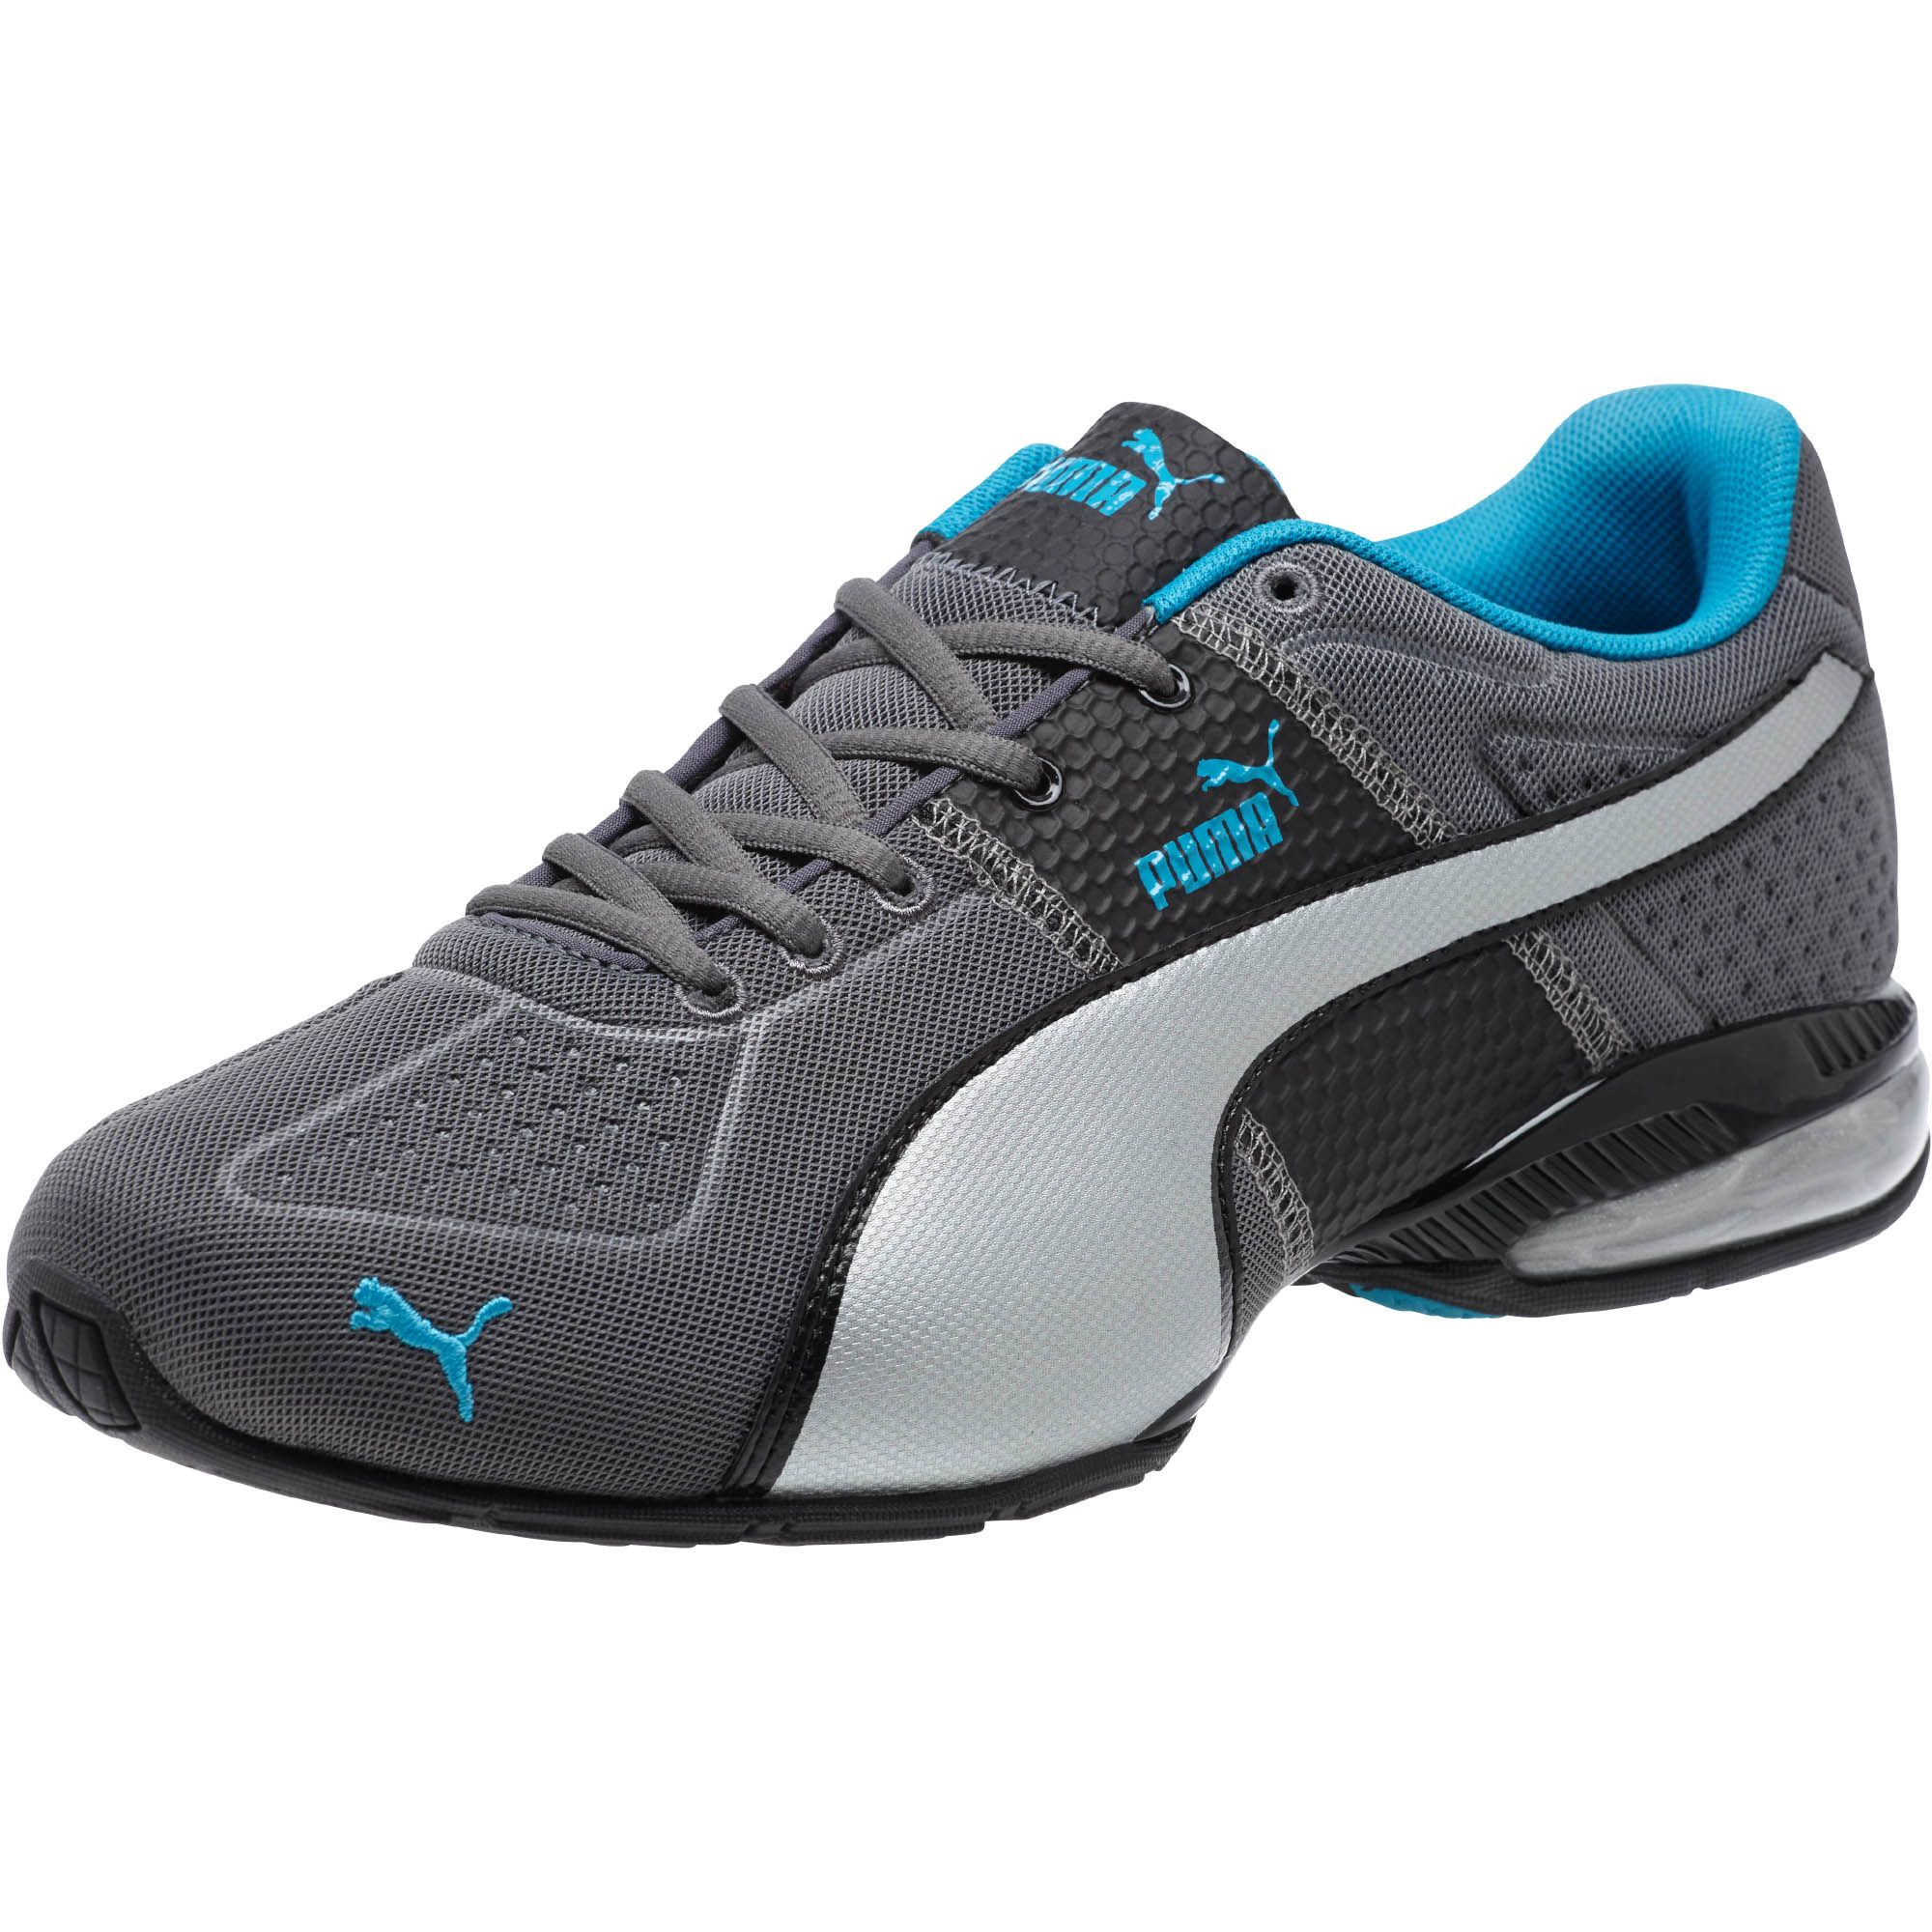 Puma Motion Control Running Shoes